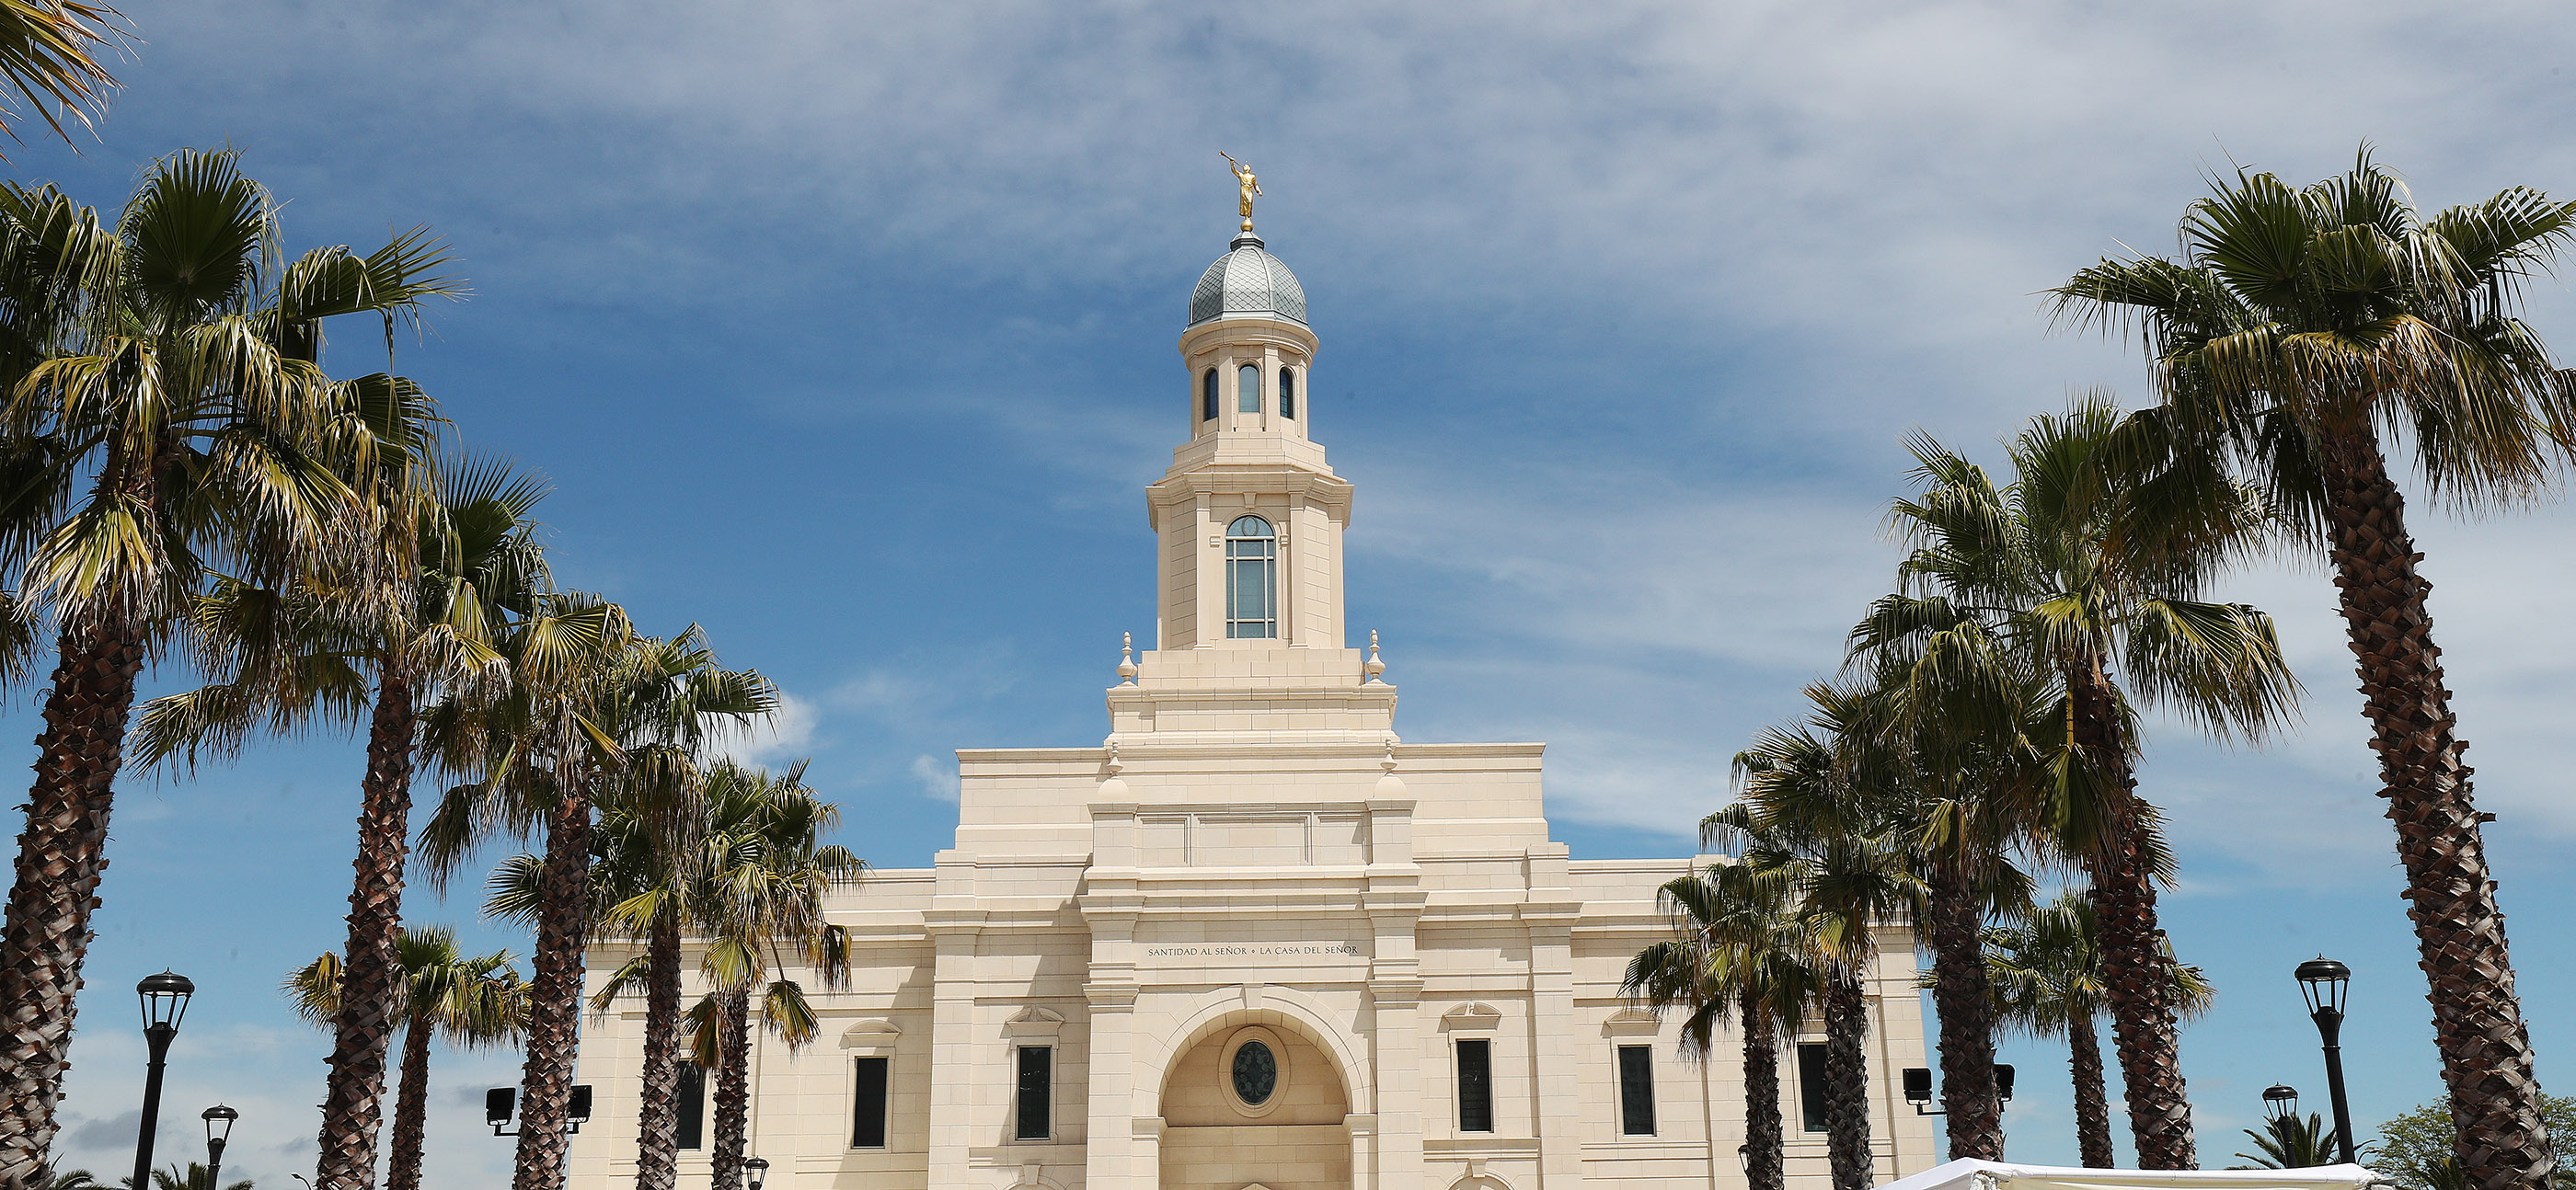 Preparations are completed for the dedication of the LDS Concepcion Chili Temple in Concepcion, Chili on Saturday, Oct. 27, 2018.